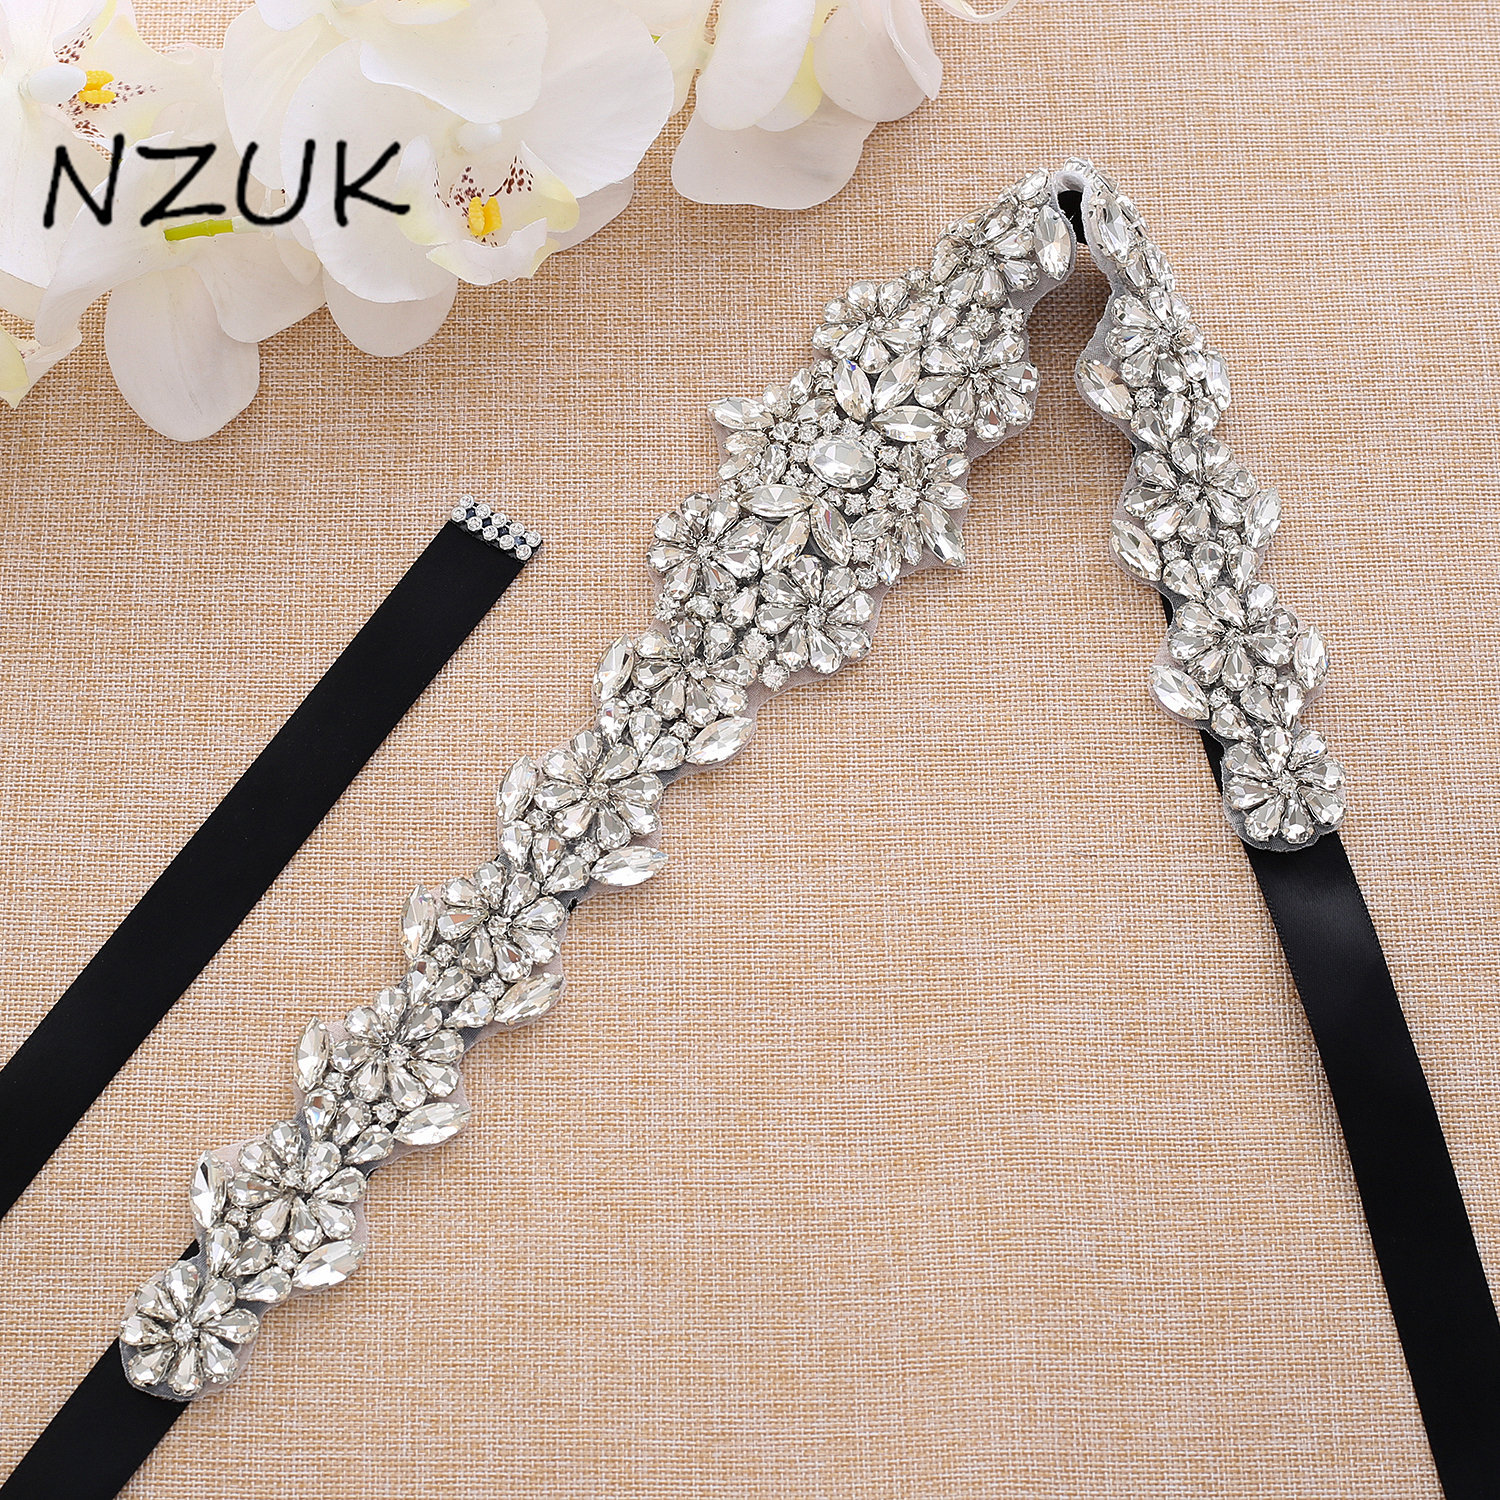 Vintage Rhinestone And Pearl Bridal Belt Handmade Crystal Sash Beaded Appliqued Sash Belt For Wedding Dress ZZY168S